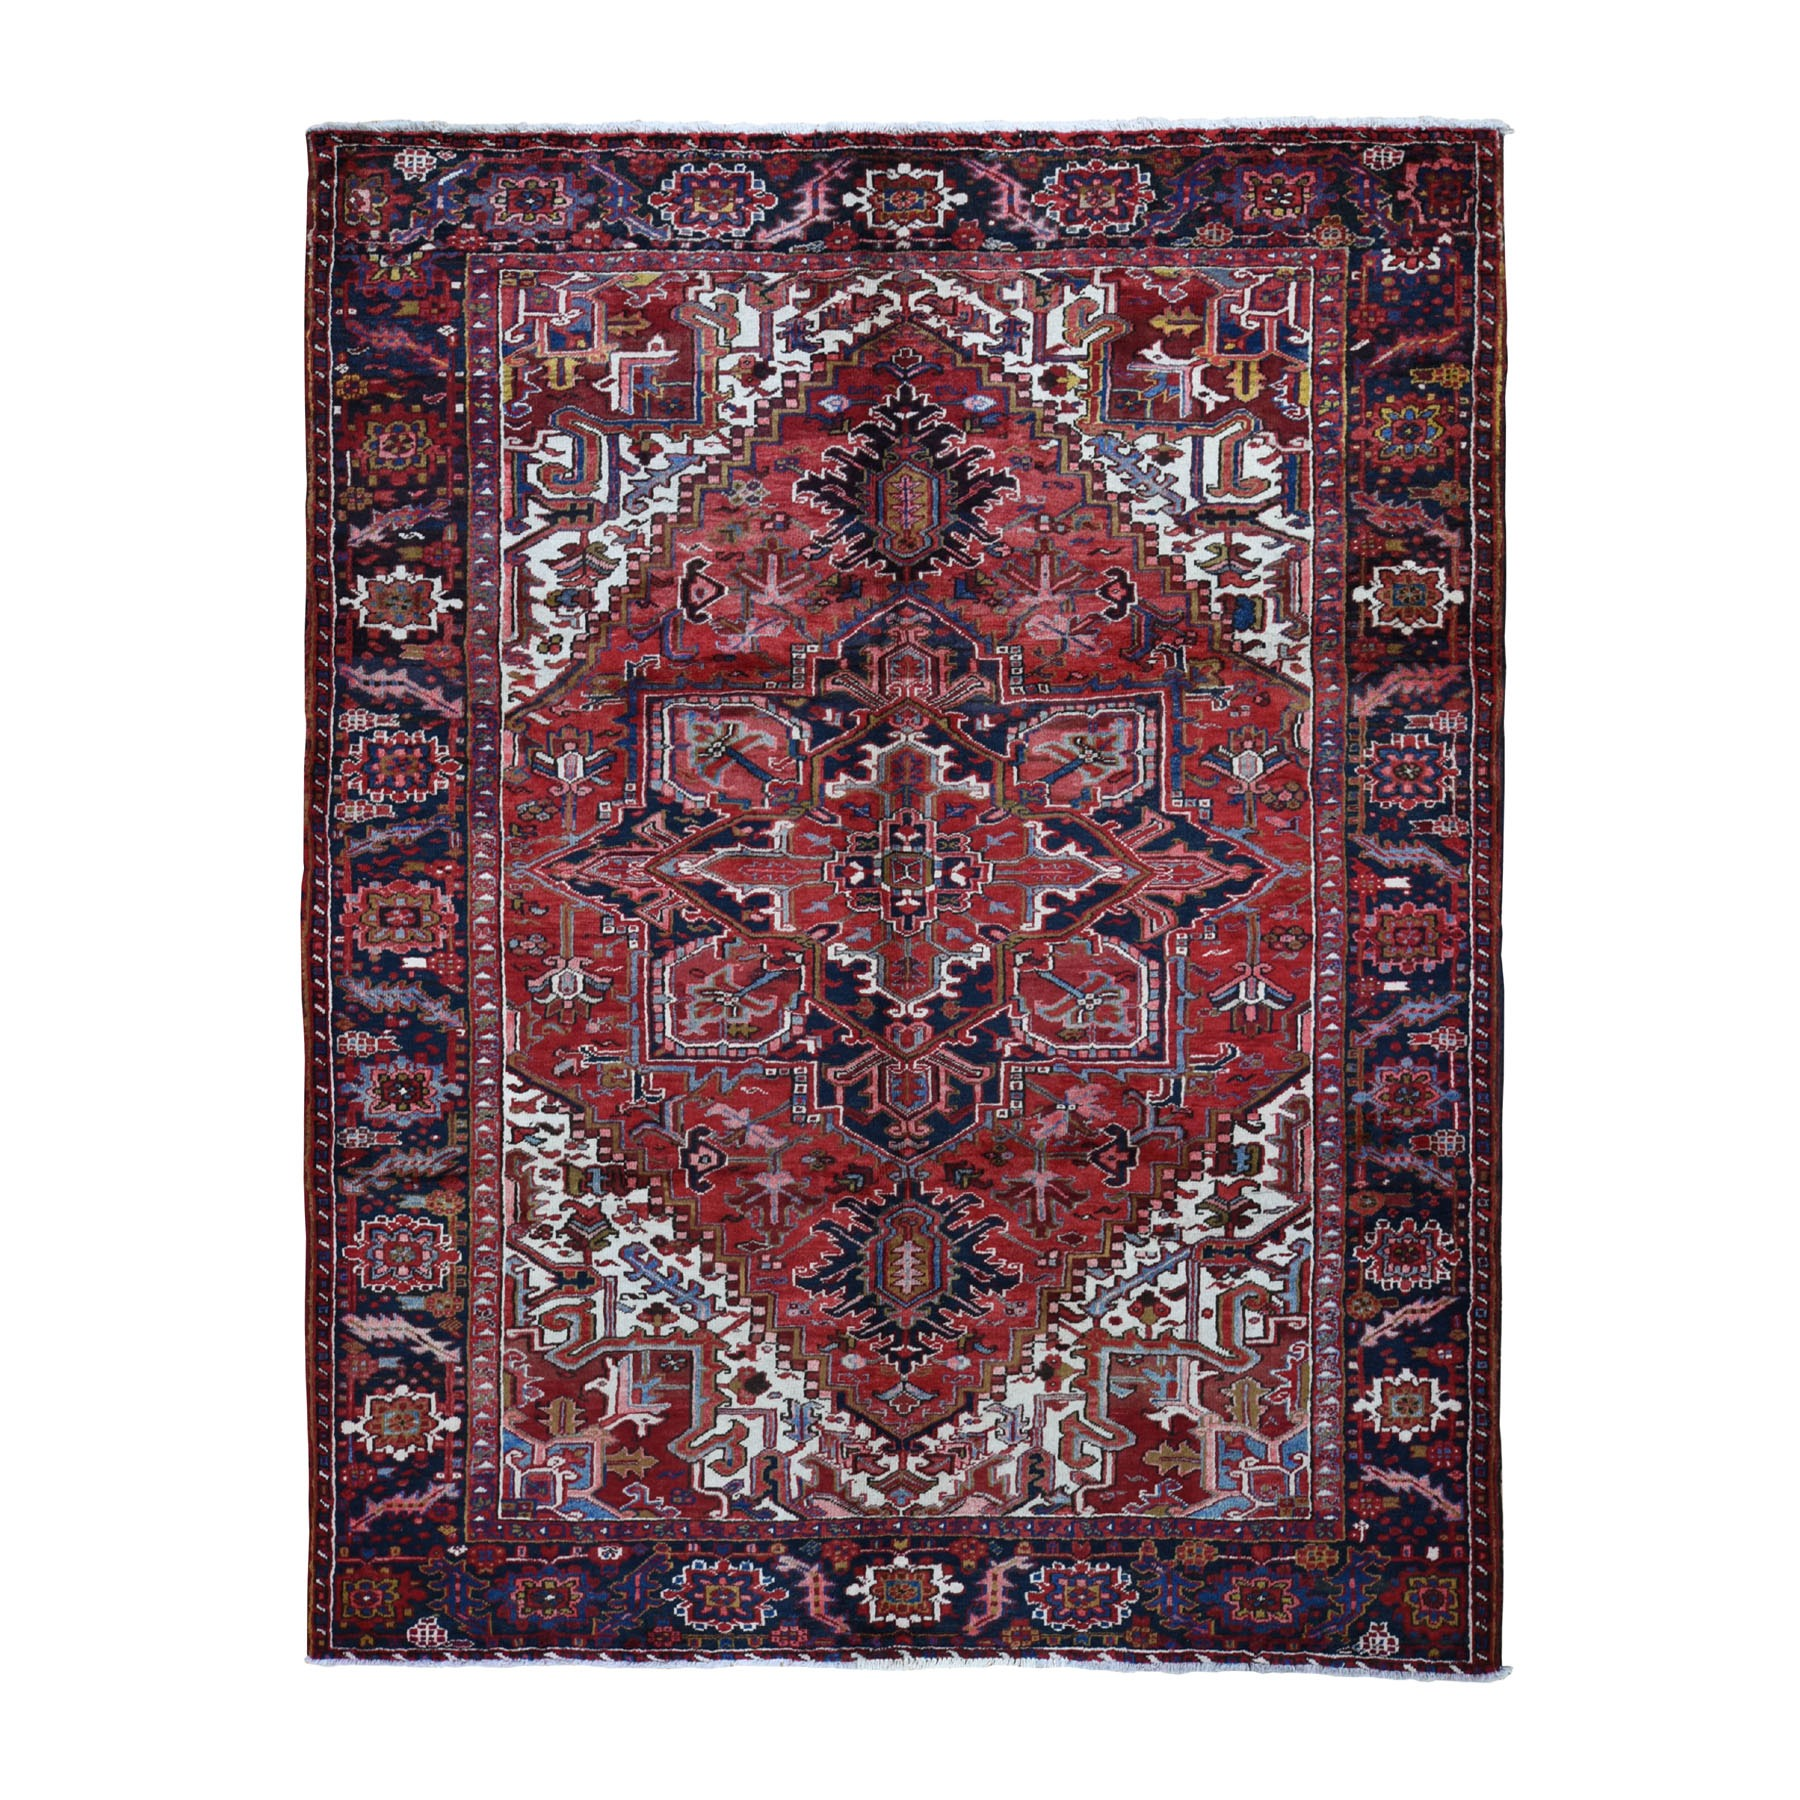 8'X10' Red Semi Antique Persian Heriz Geometric Design Thick And Plush Hand Knotted Oriental Rug moad8cc9